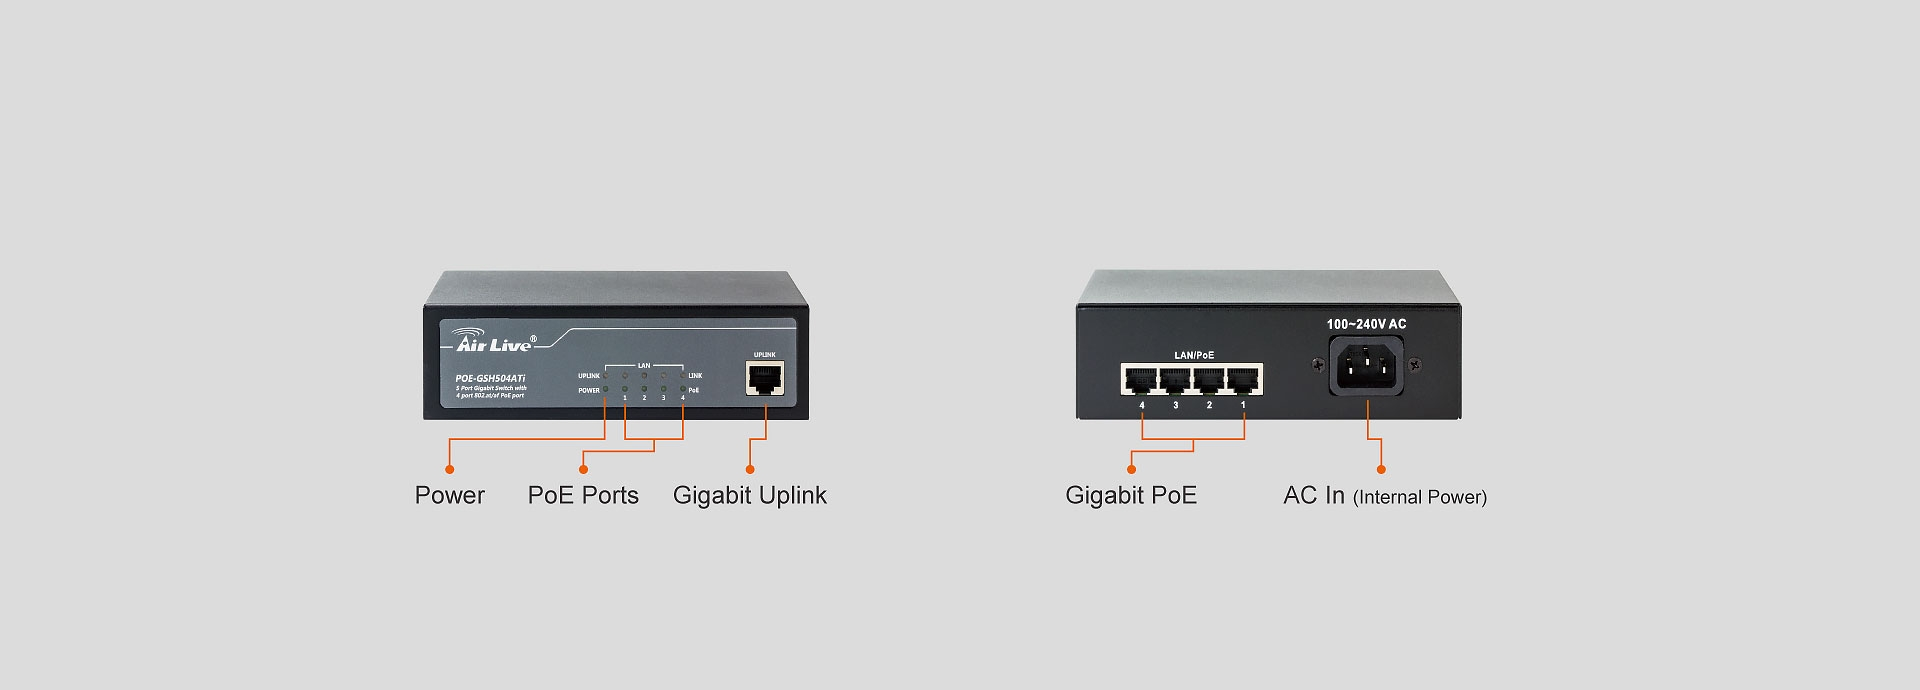 Reliable compact size Gigabit PoE switch